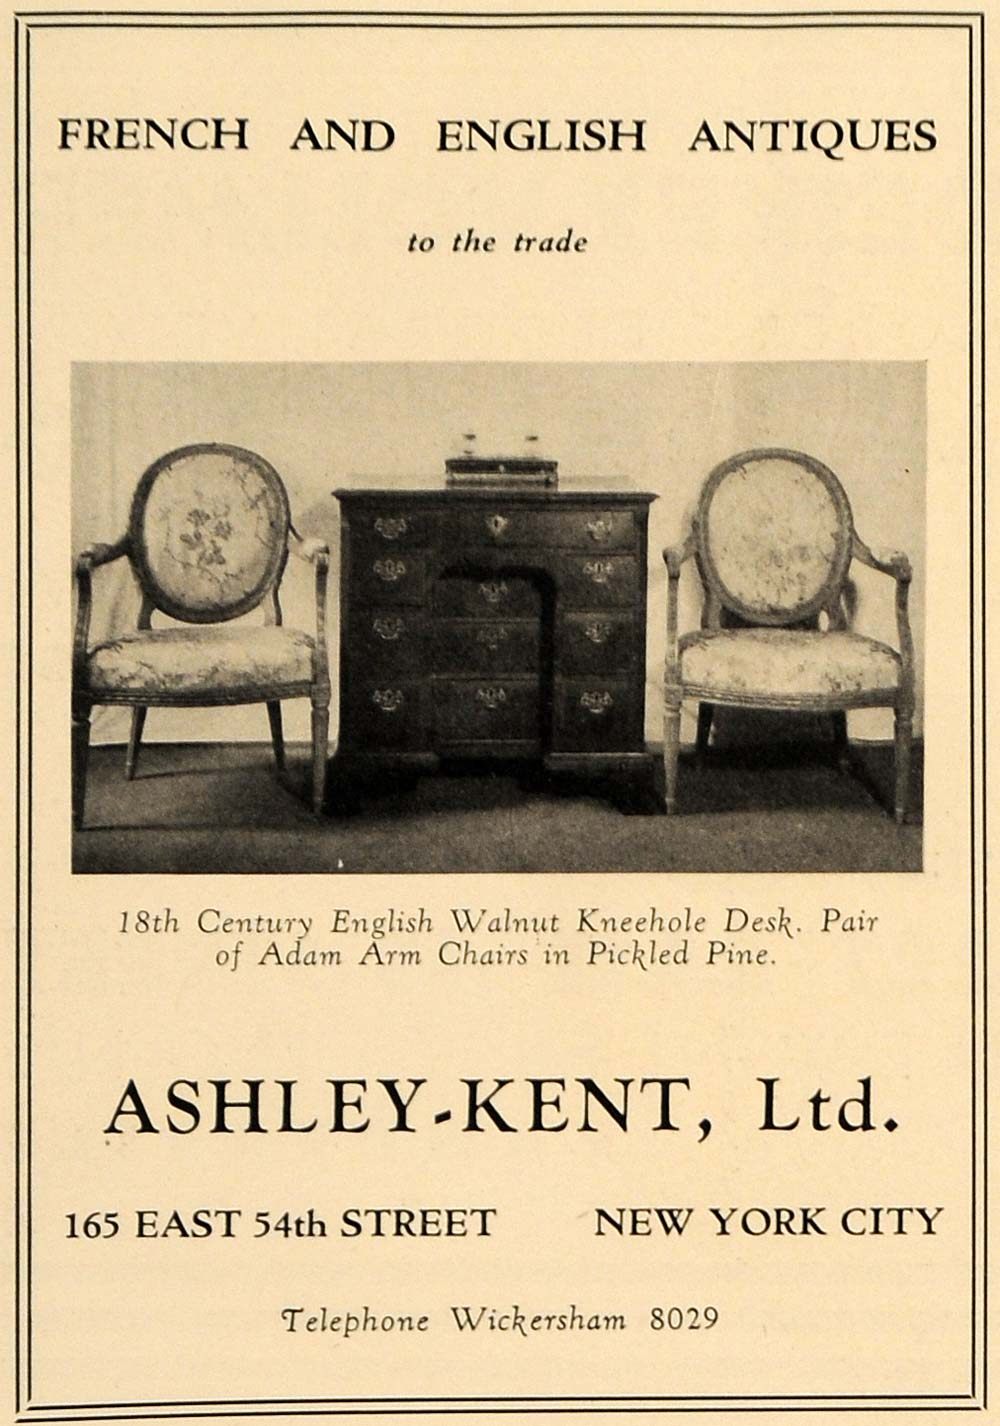 1930 Ad Ashley-Kent 18th Cent English French Antiques - ORIGINAL ADVERTISING GF2